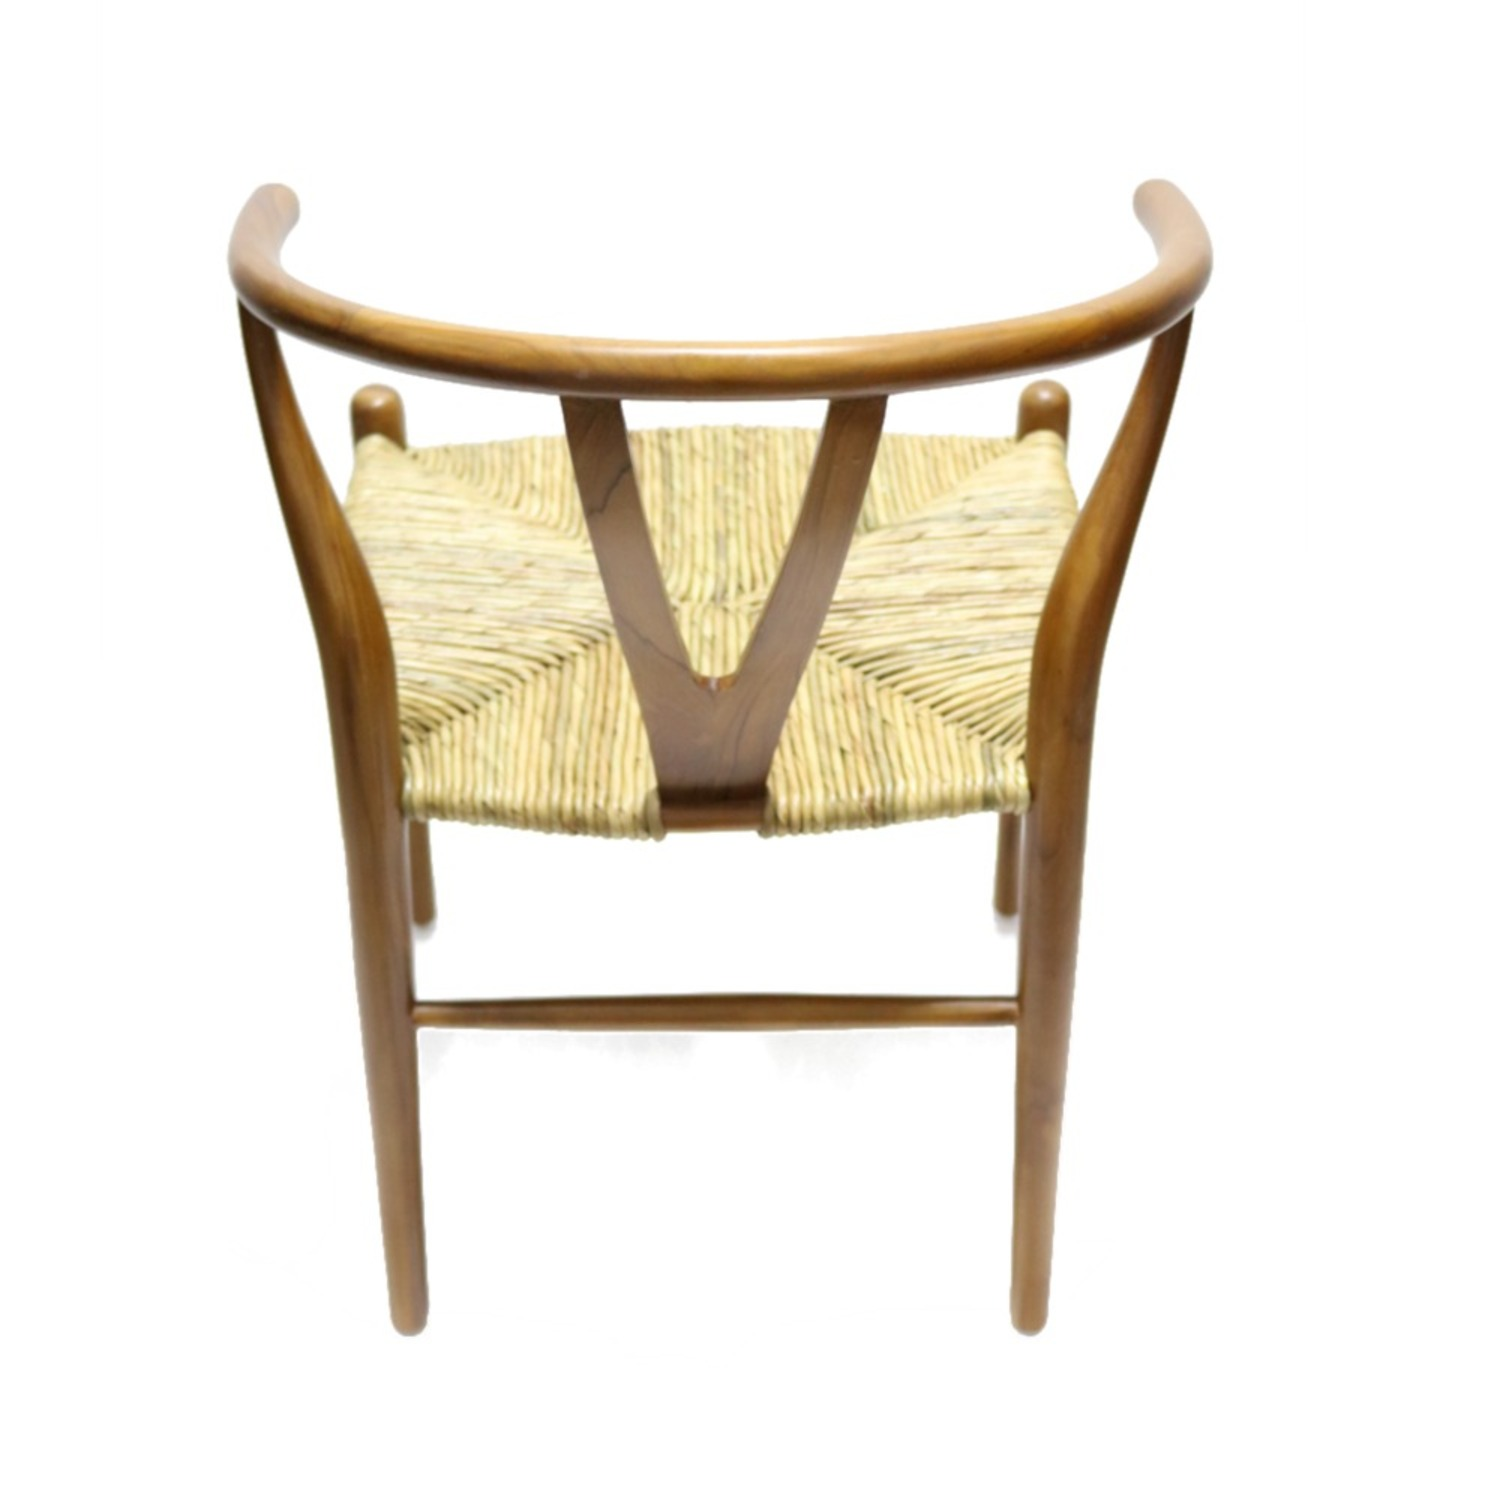 Dining Chair In Walnut Frame & Natural Hemp Seat - image-2